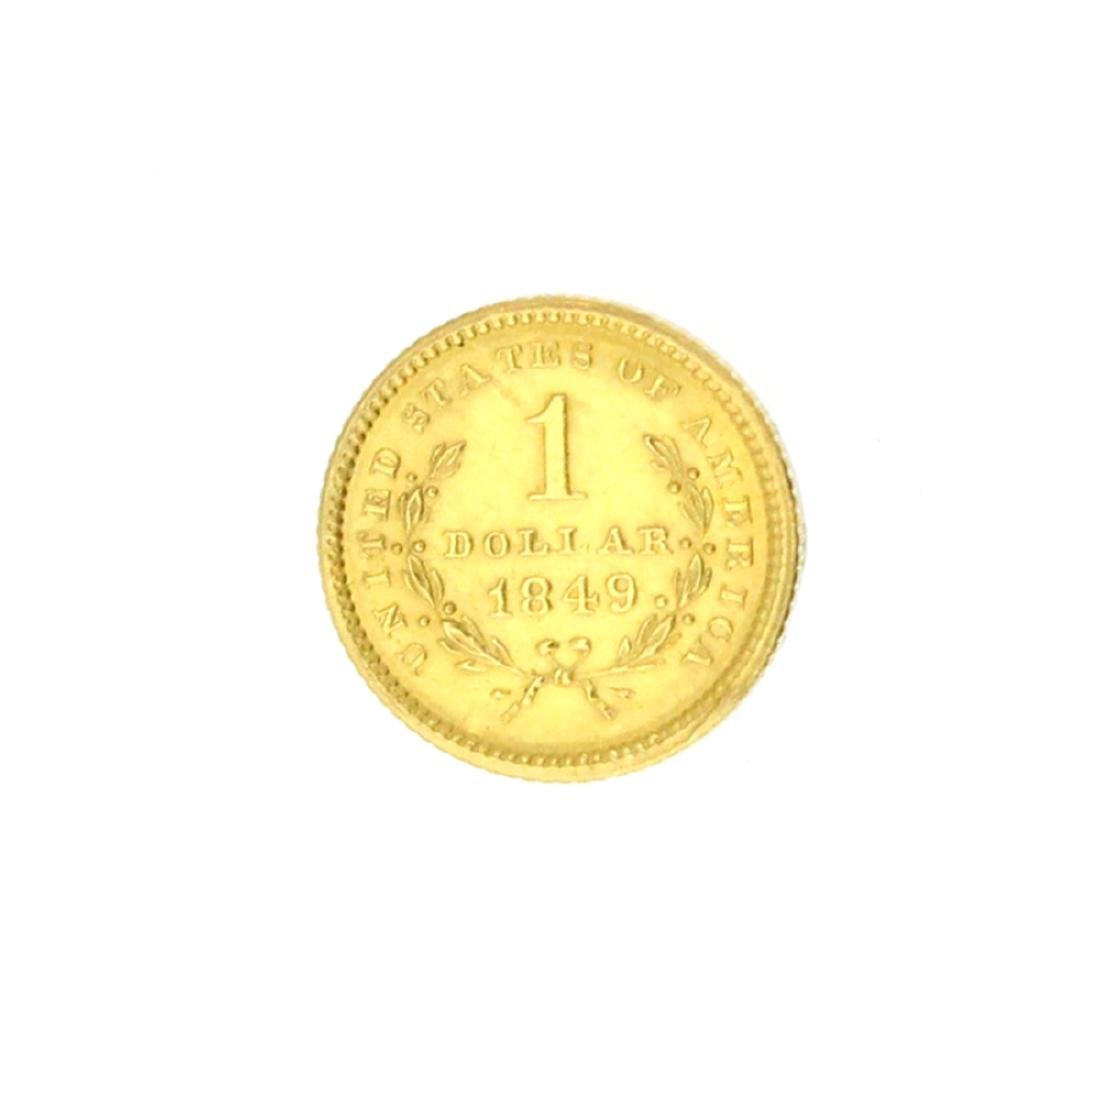 Extremely Rare 1849 $1 U.S. Liberty Head Gold Coin - 2